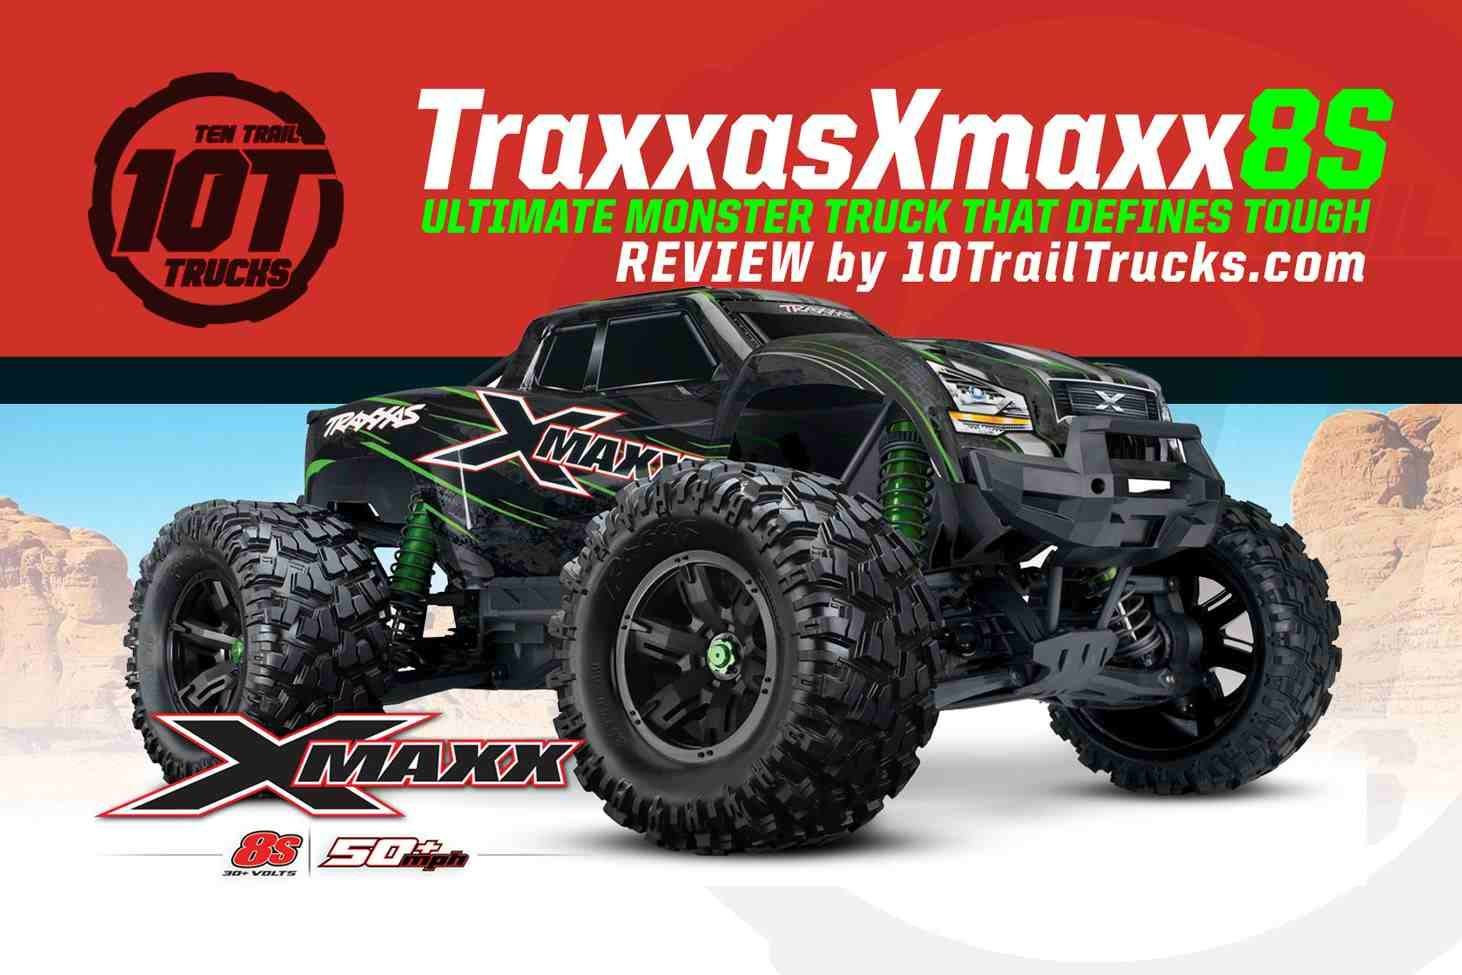 Traxxas Xmaxx Review – This Beast may just be the Truck Of The Year